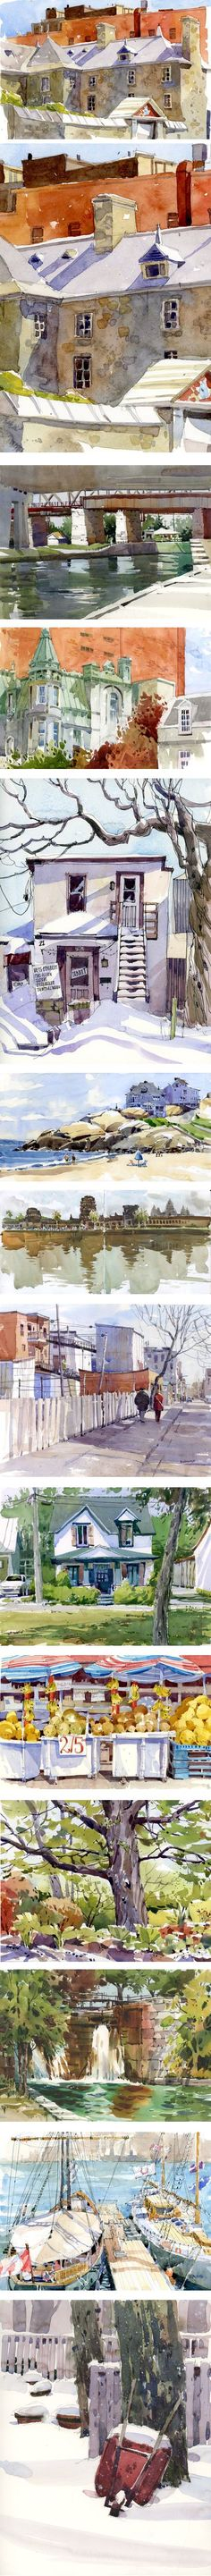 Shari Blaukopf, watercolors, urban sketches